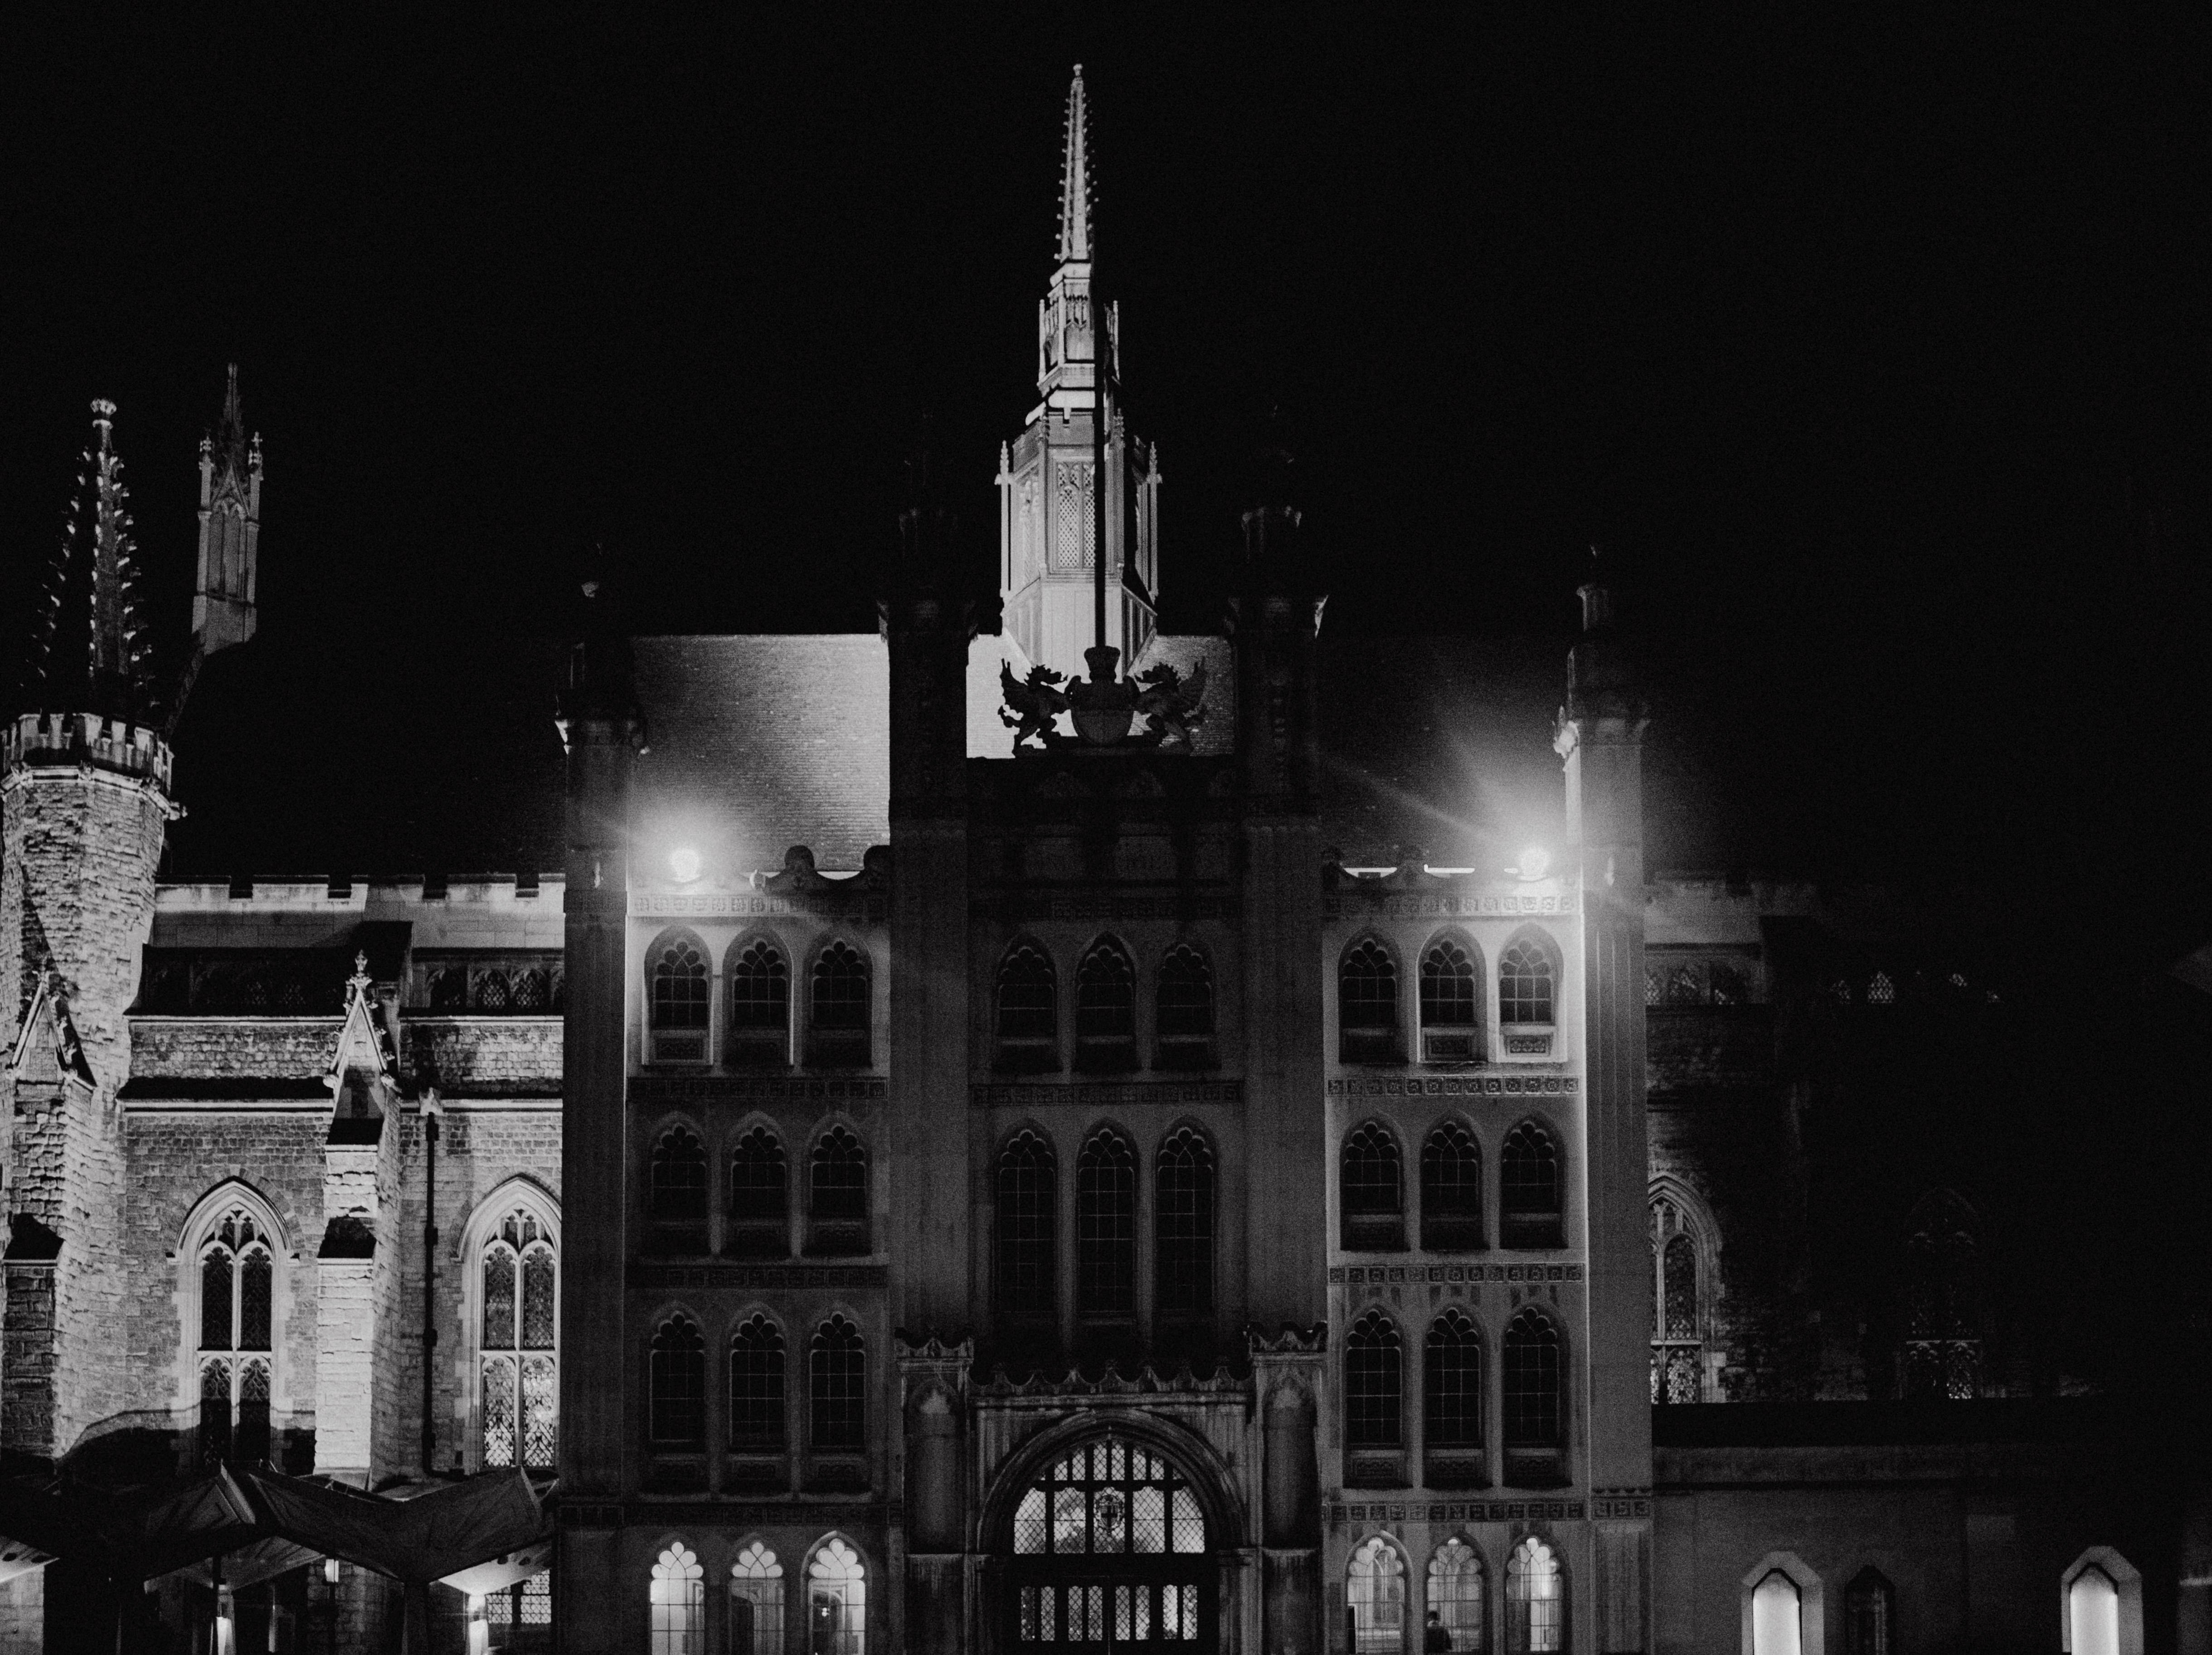 All Hallows by the Tower of London